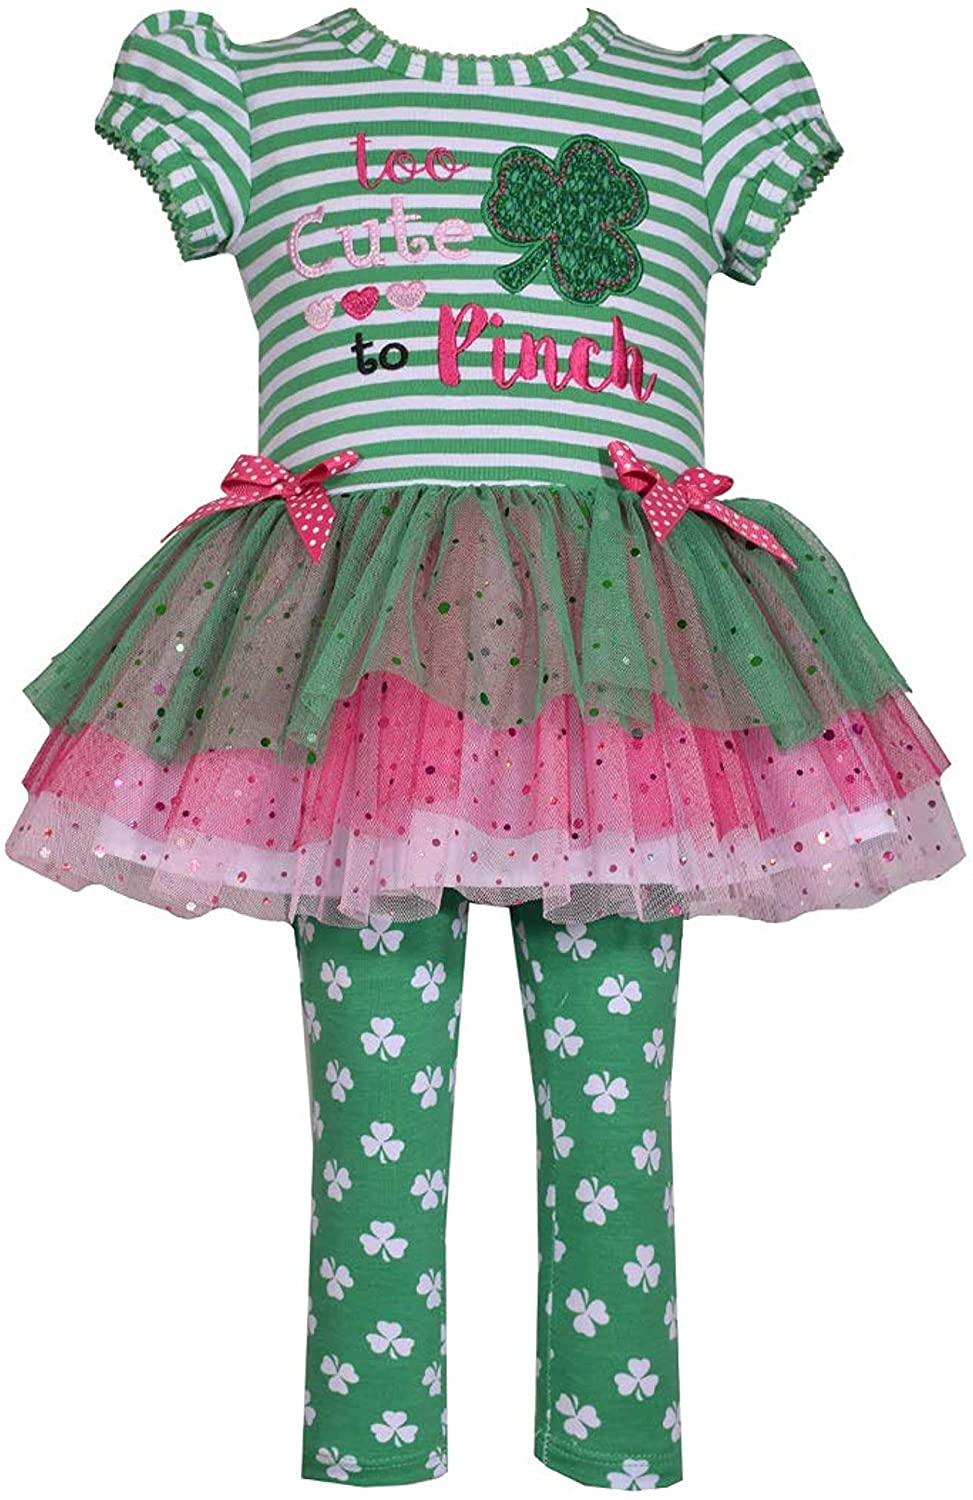 Bonnie Jean Girls St Patricks Day Shamrock Tutu Top and Leggings Set for Baby Toddler and Little Girls - Too Cute to Pinch